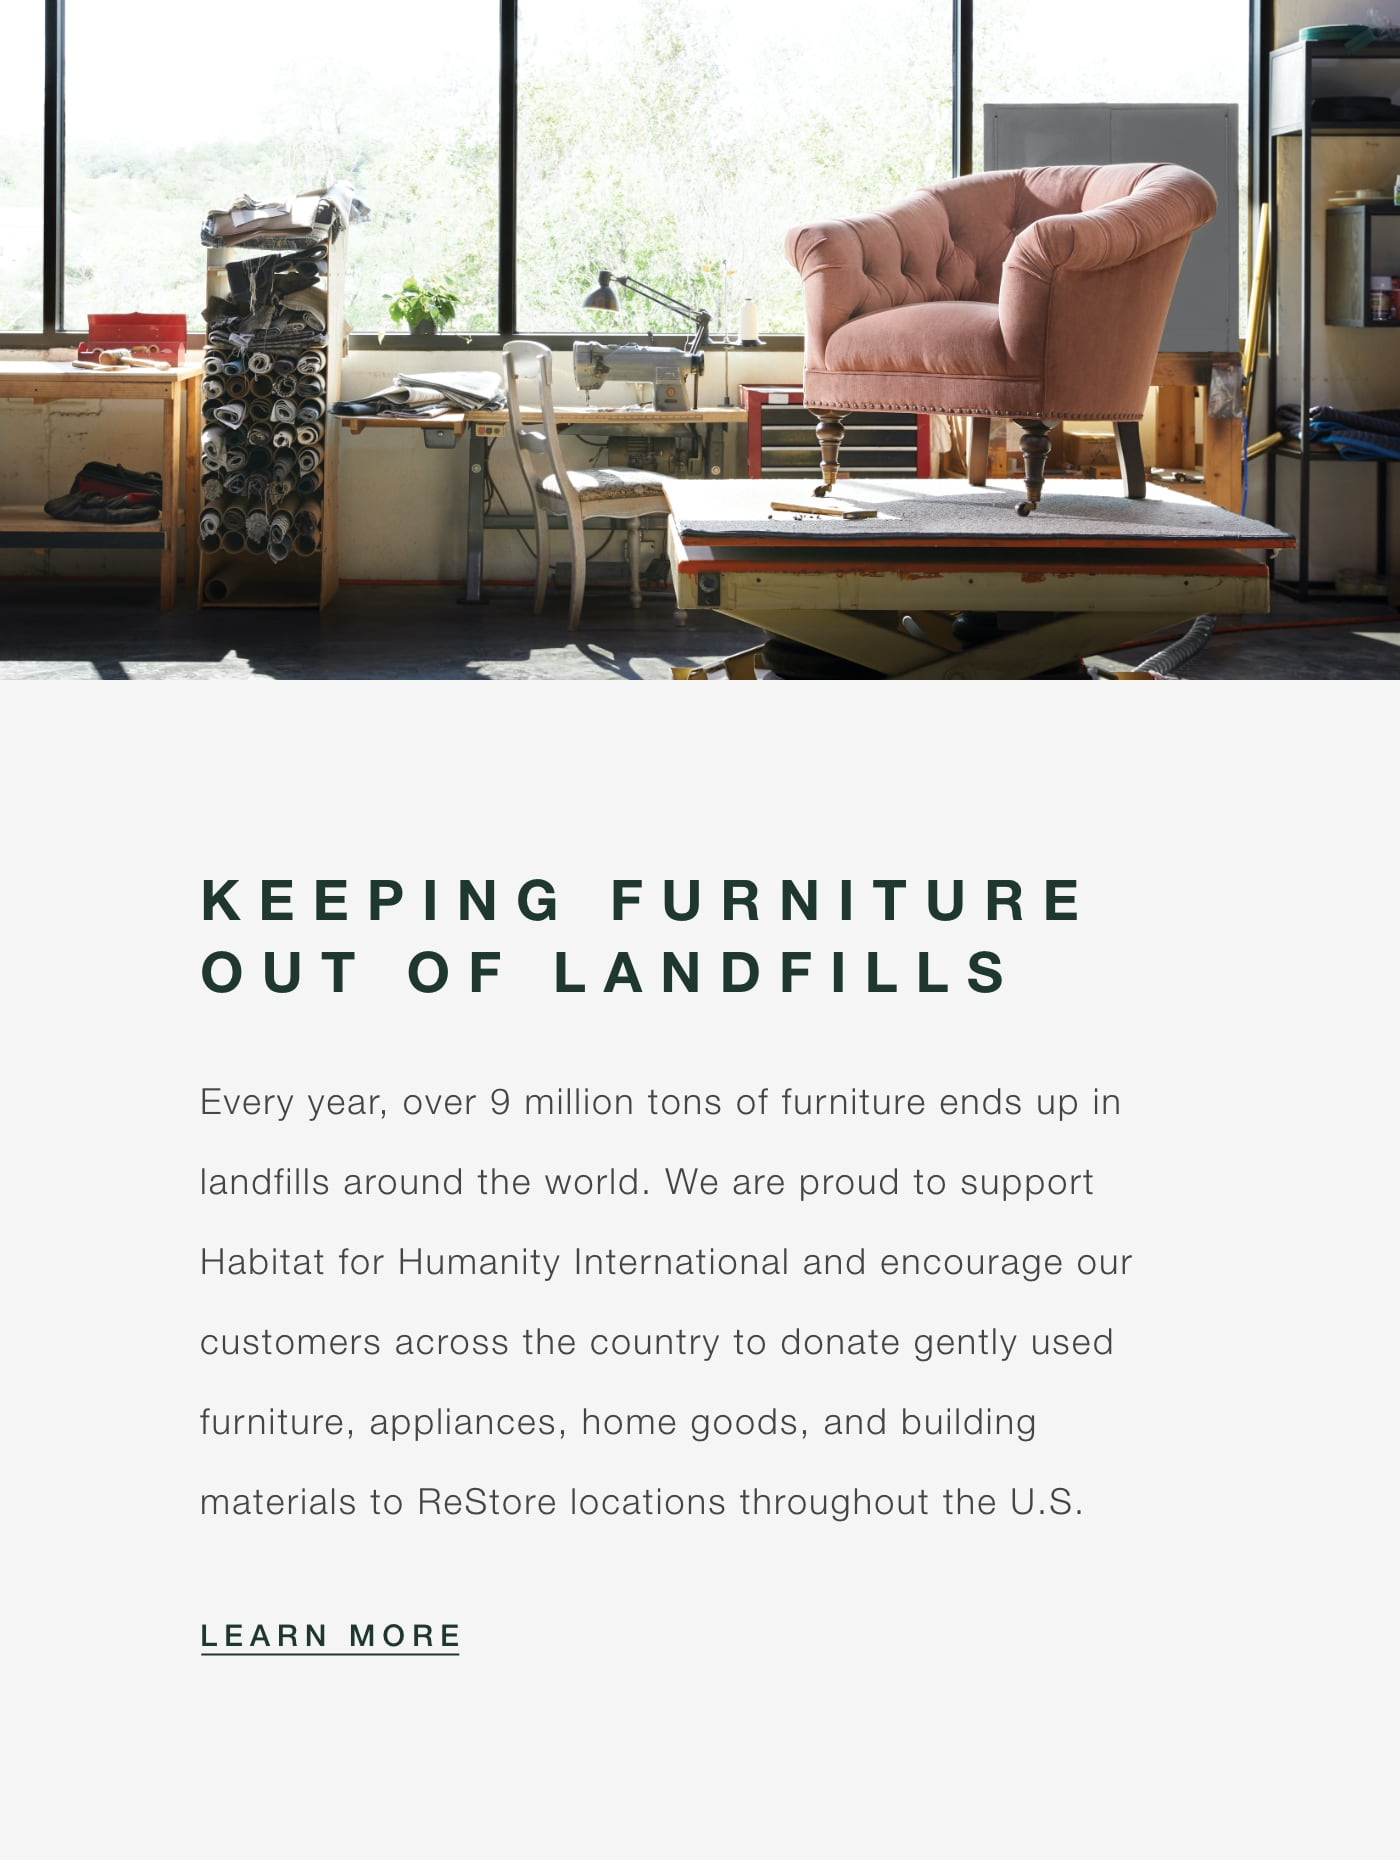 Habitat for Humanity - Keeping Furniture Out of Landfills